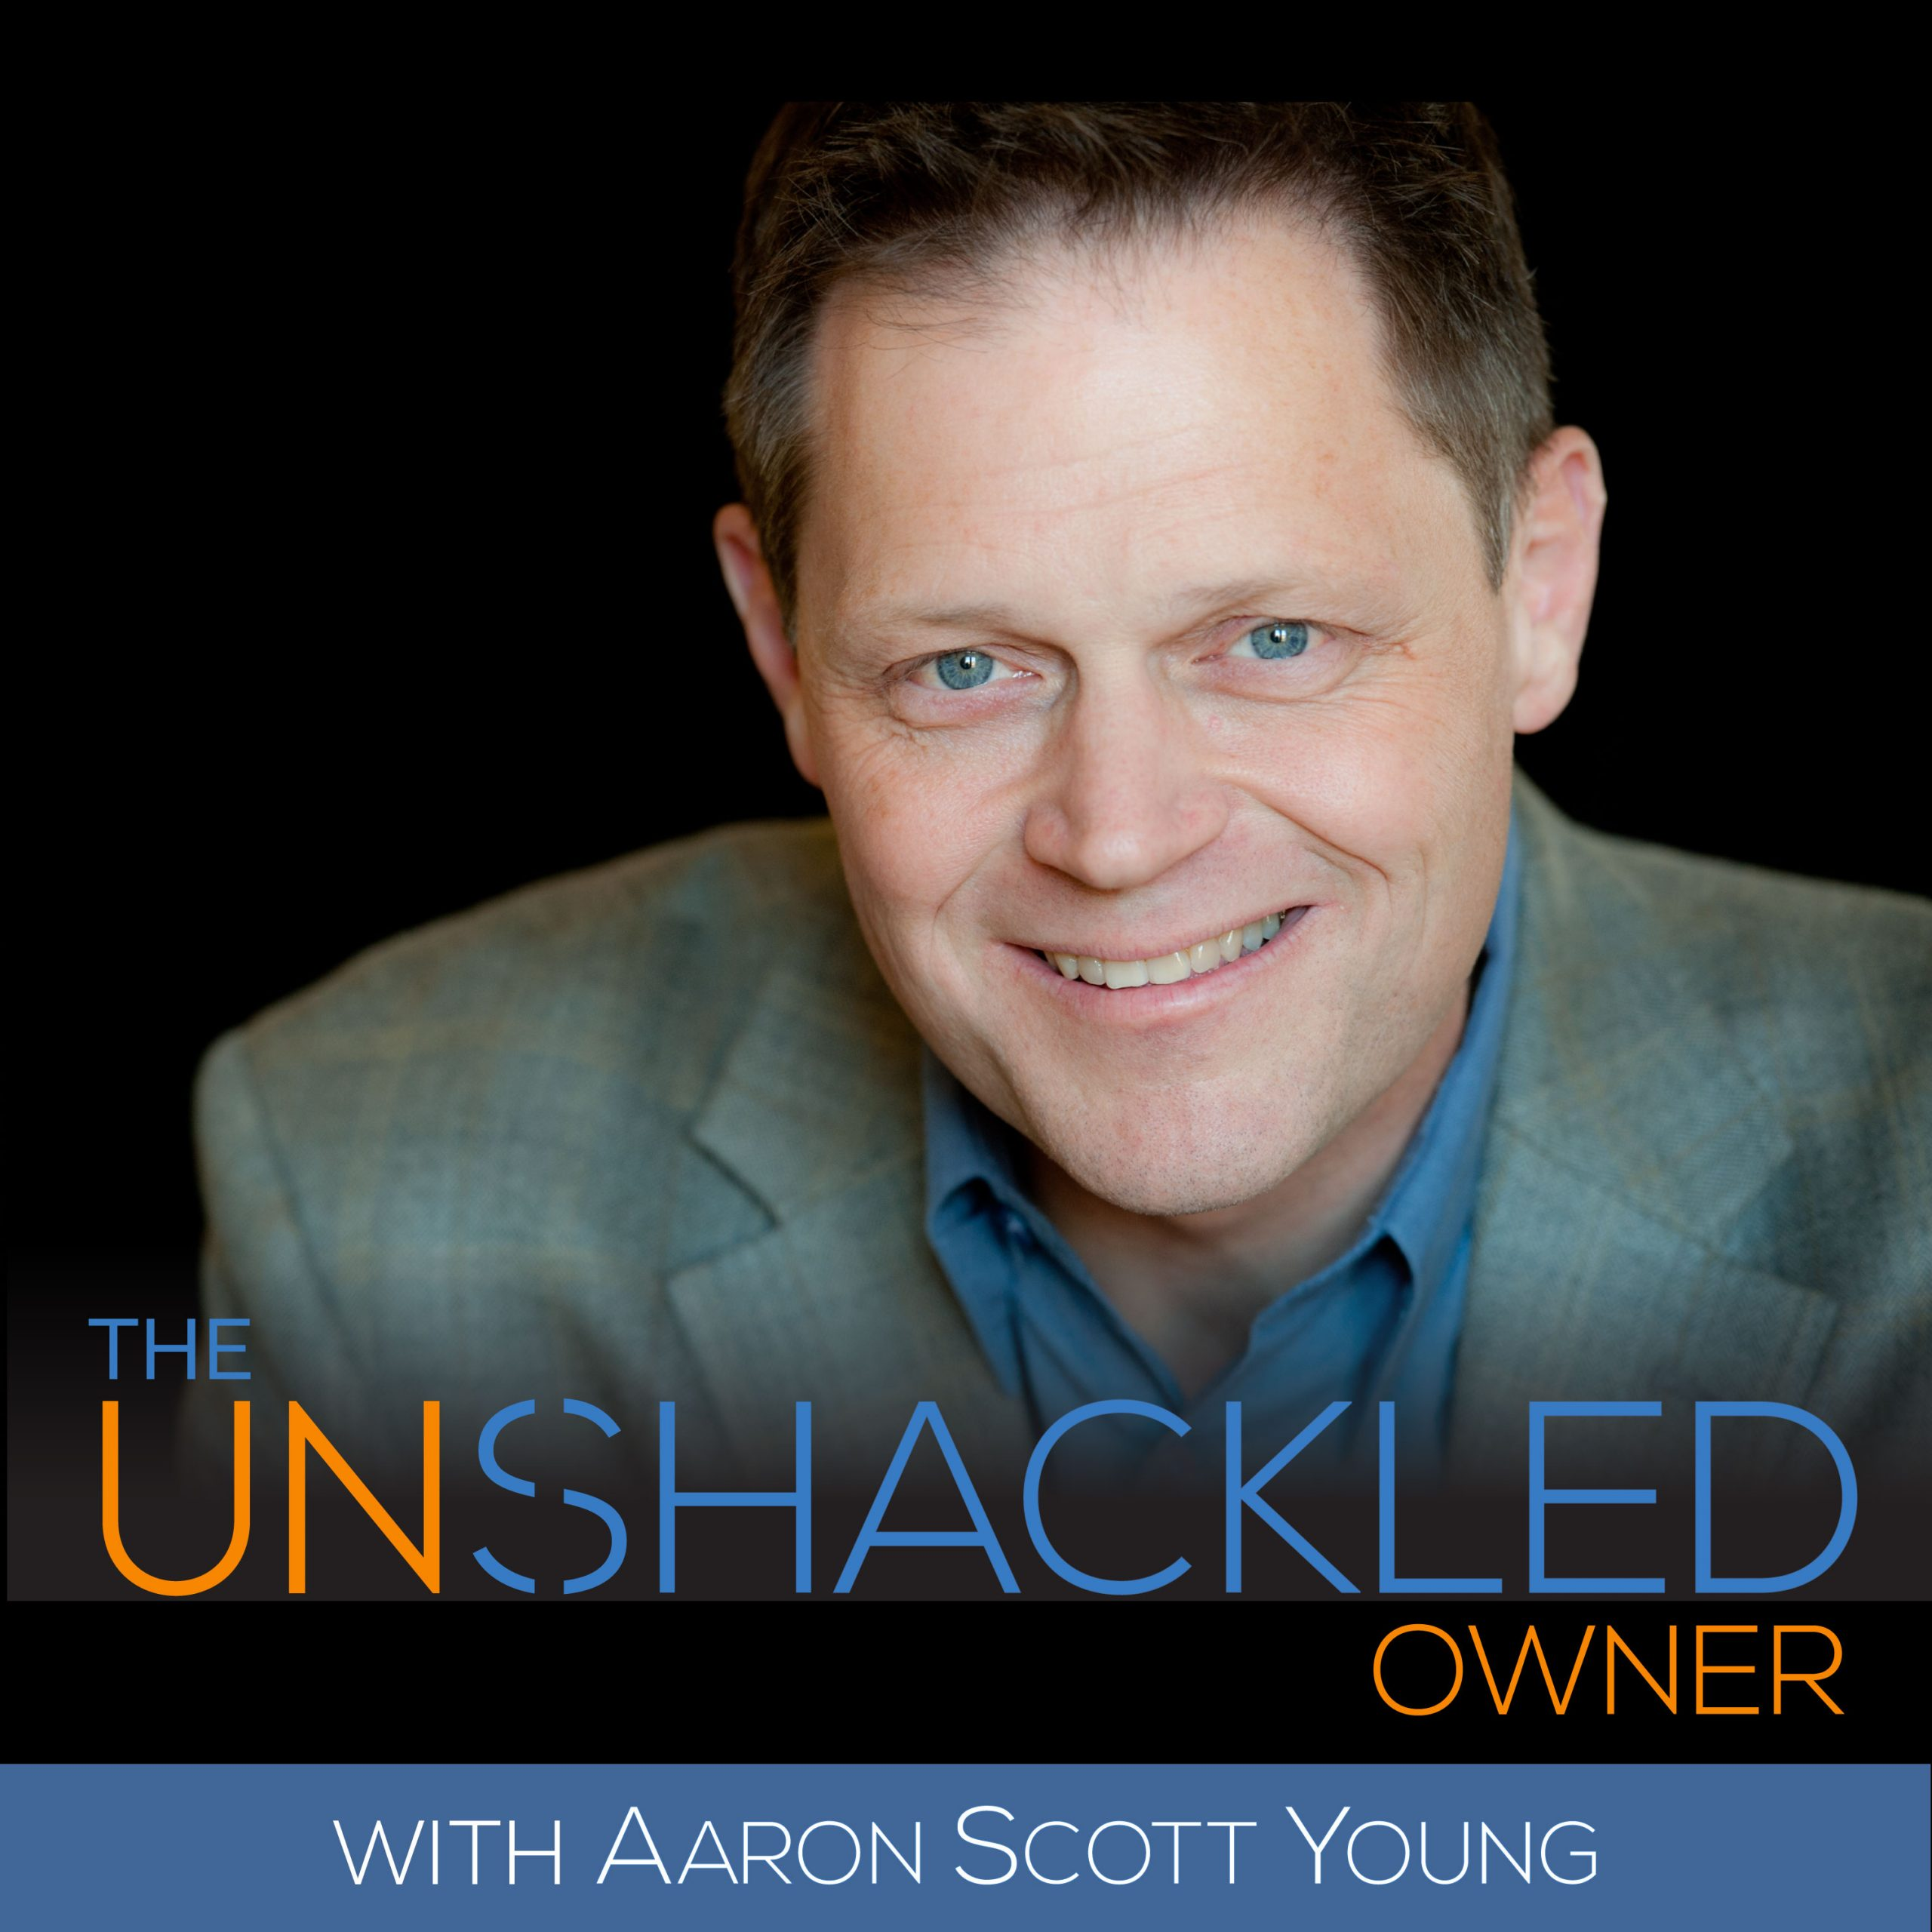 3D Thinking | Tracy Hazzard | The Unshackled Owner Podcast with Aaron Scott Young